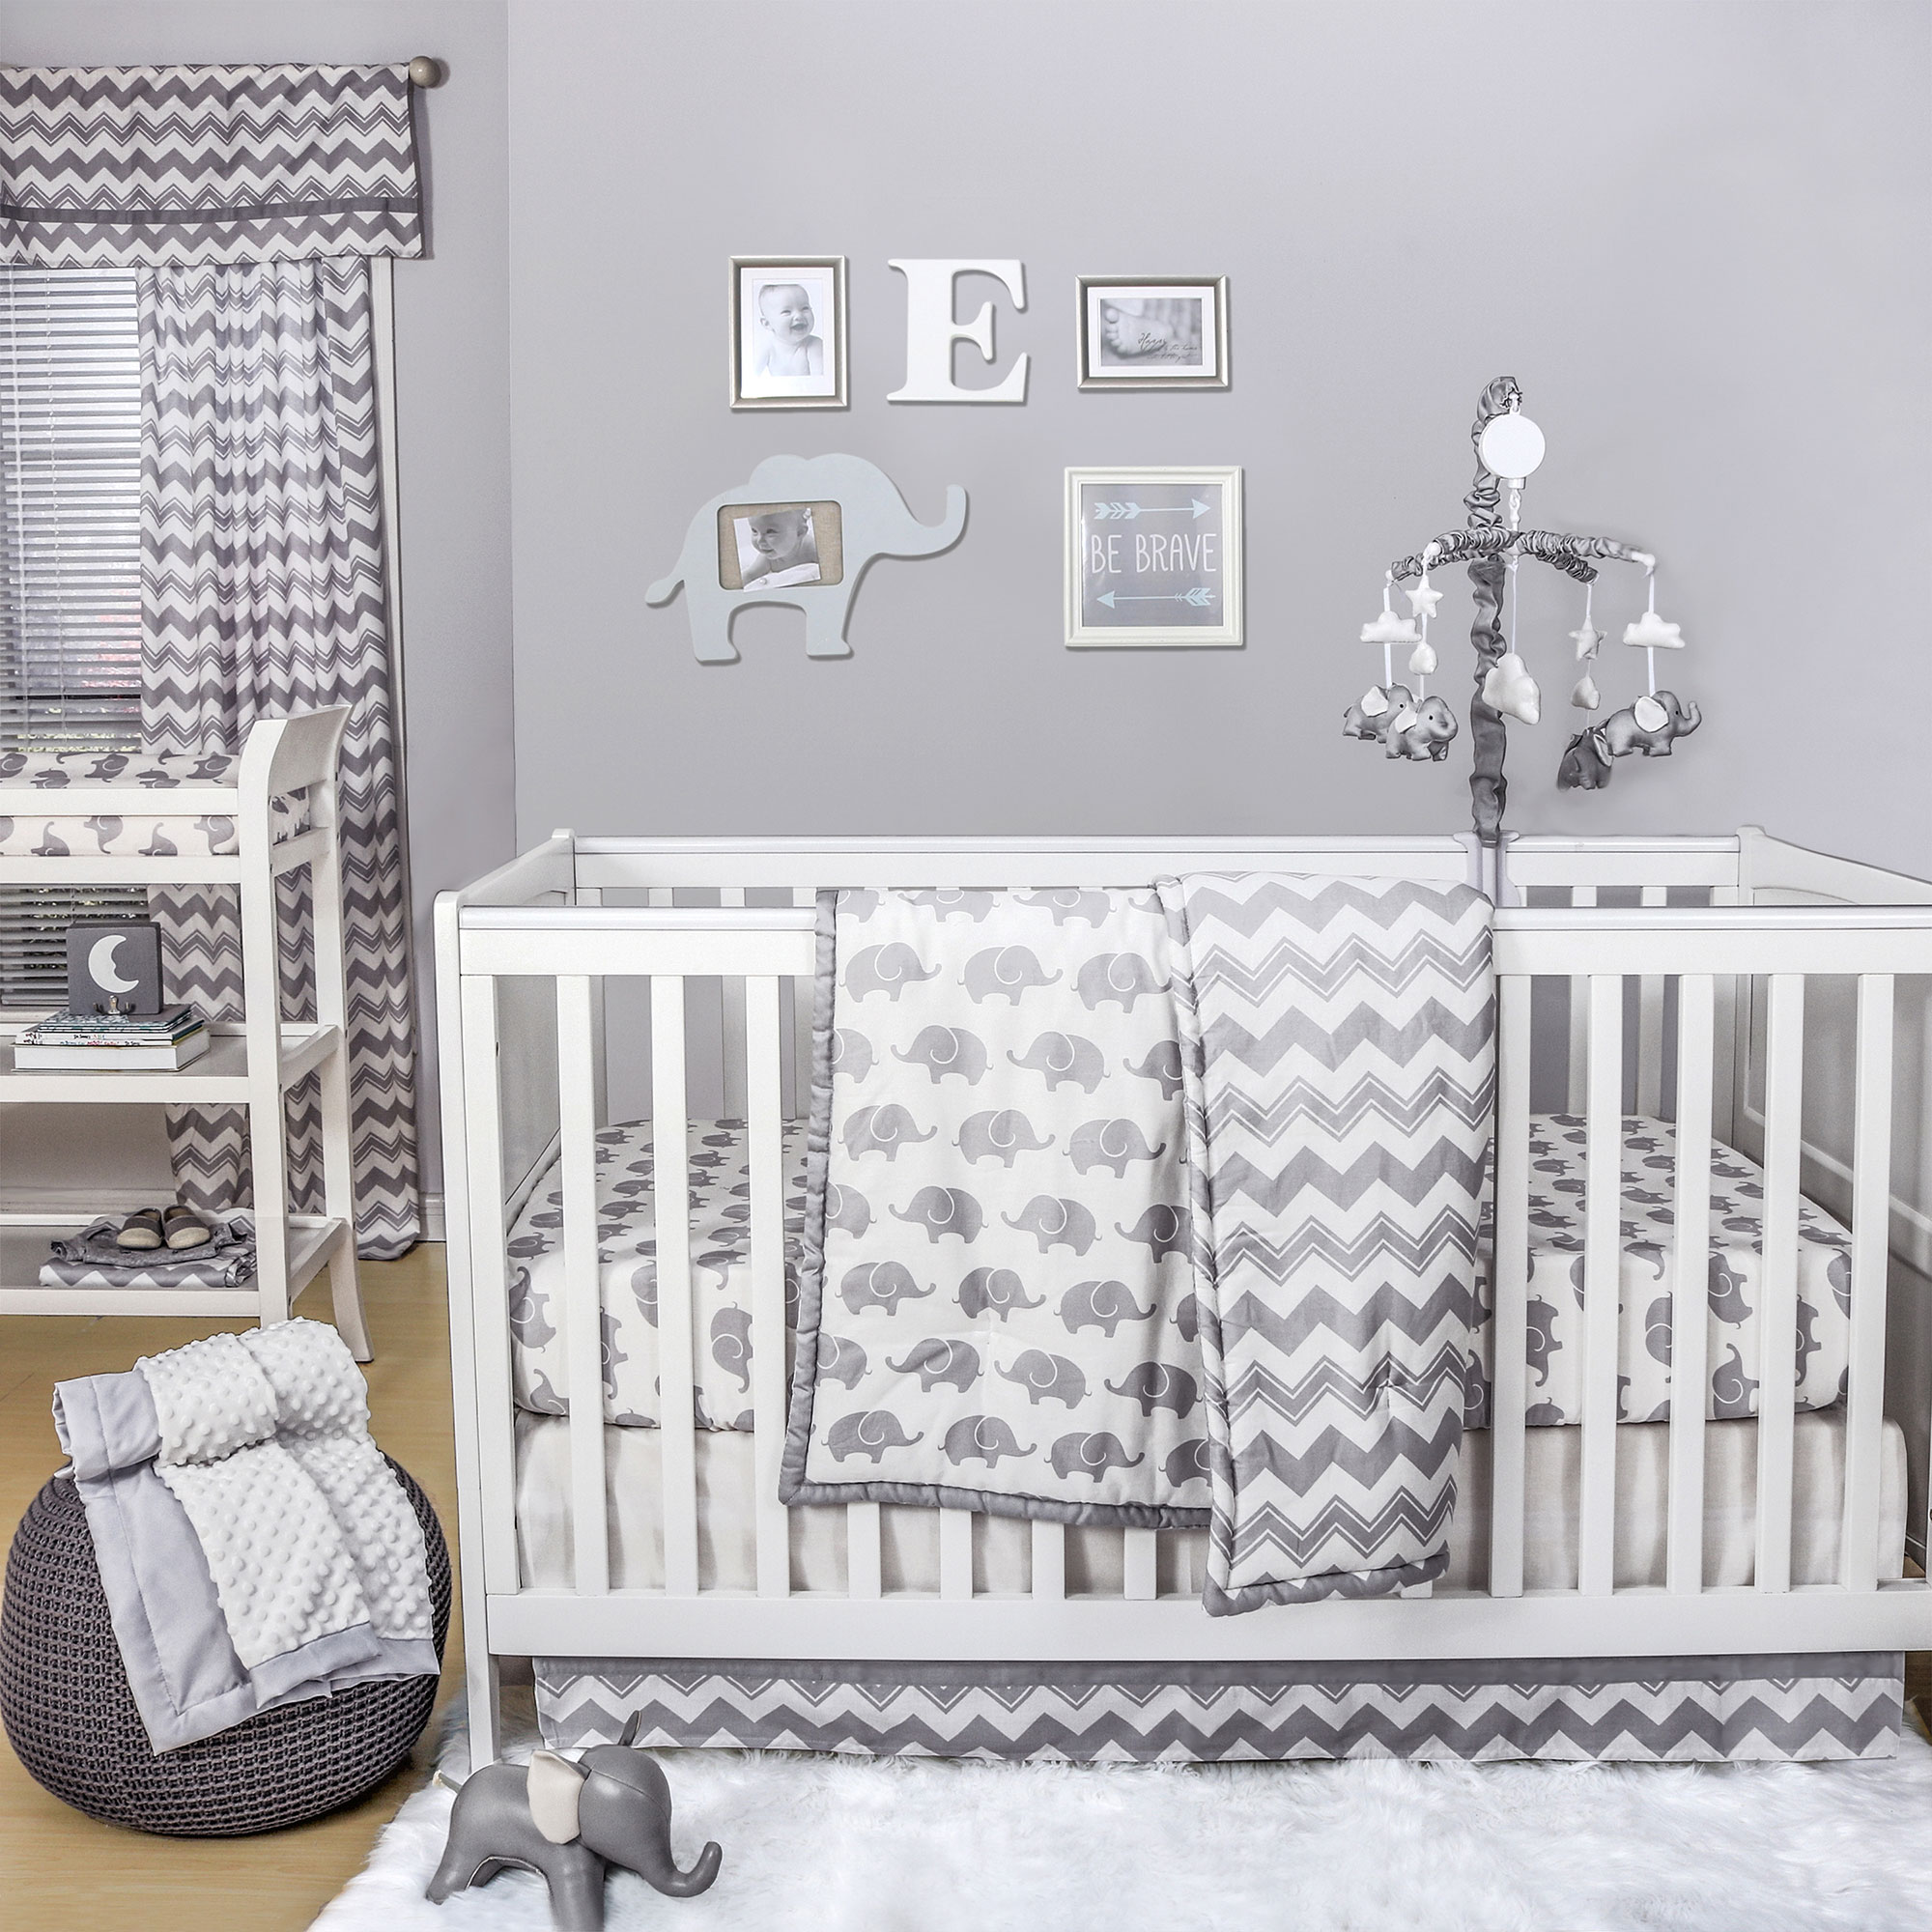 The Peanut Shell 4 Piece Baby Crib Bedding Set - Grey Zig Zag and Elephant Prints - 100% Cotton Quilt, Dust Ruffle, Fitted Sheet, and Mobile